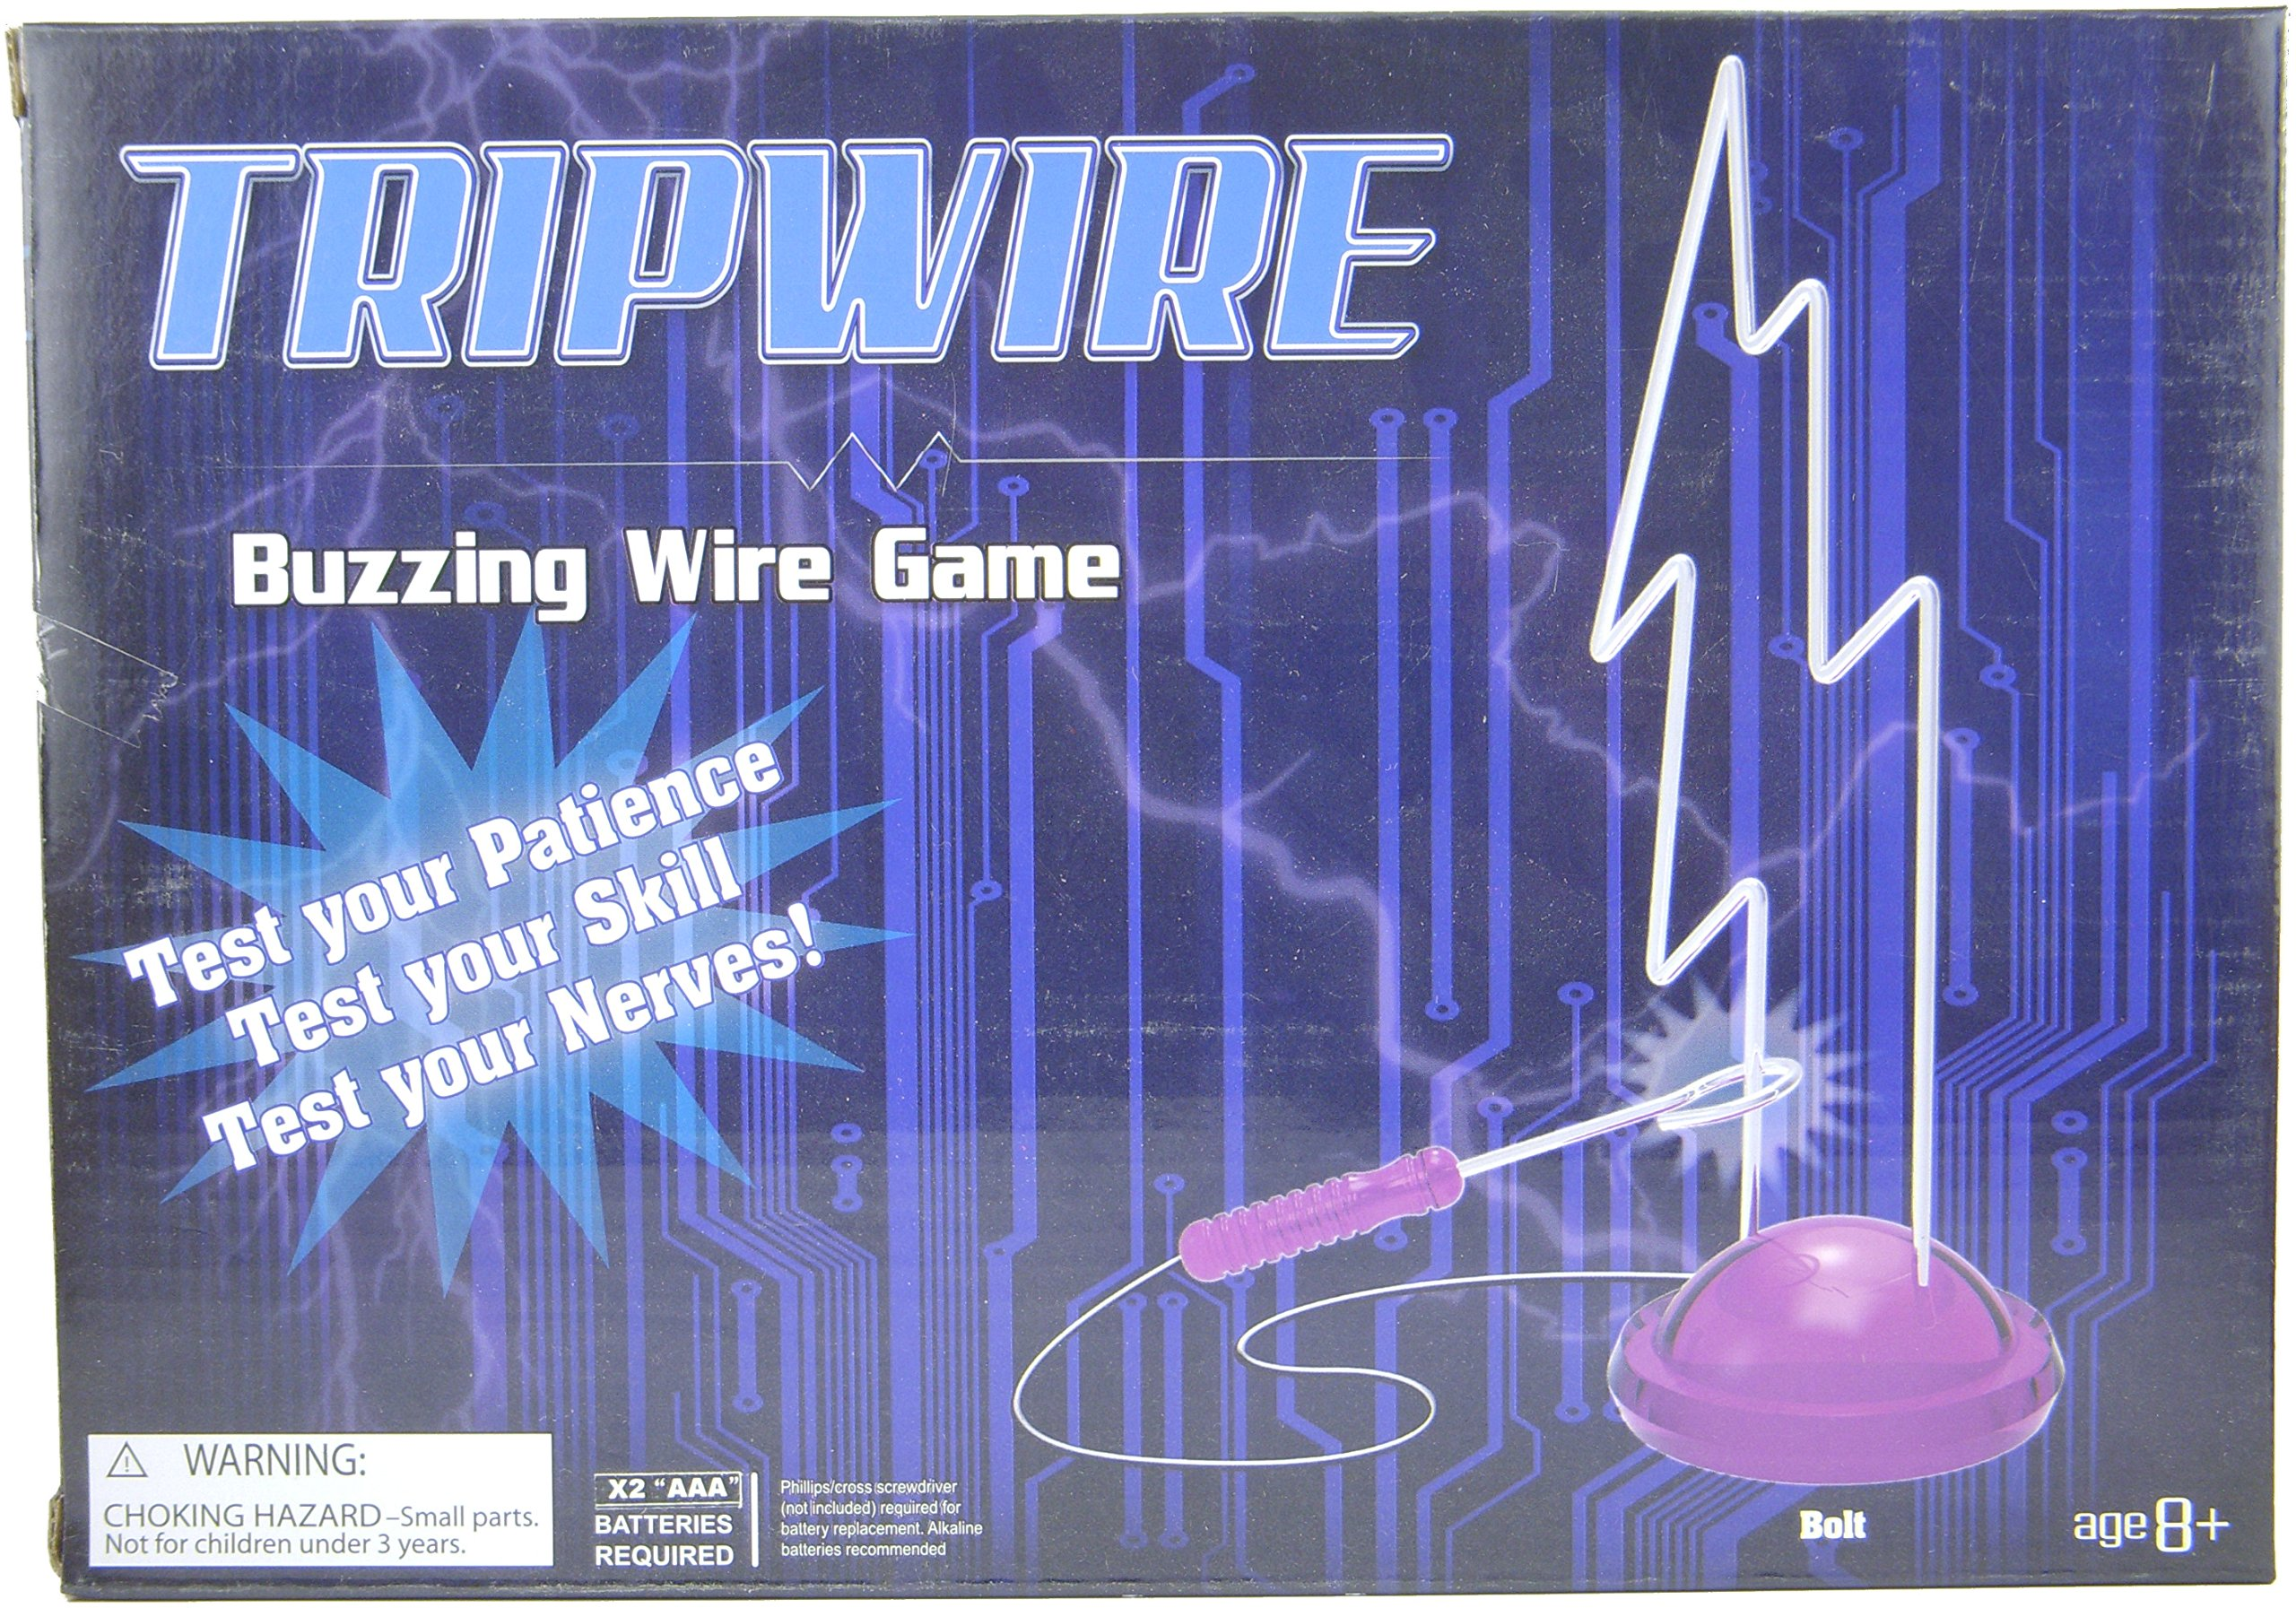 Tripwire Buzzing Wire Game Test Your Nerves and Don't Get Zapped (Bolt)